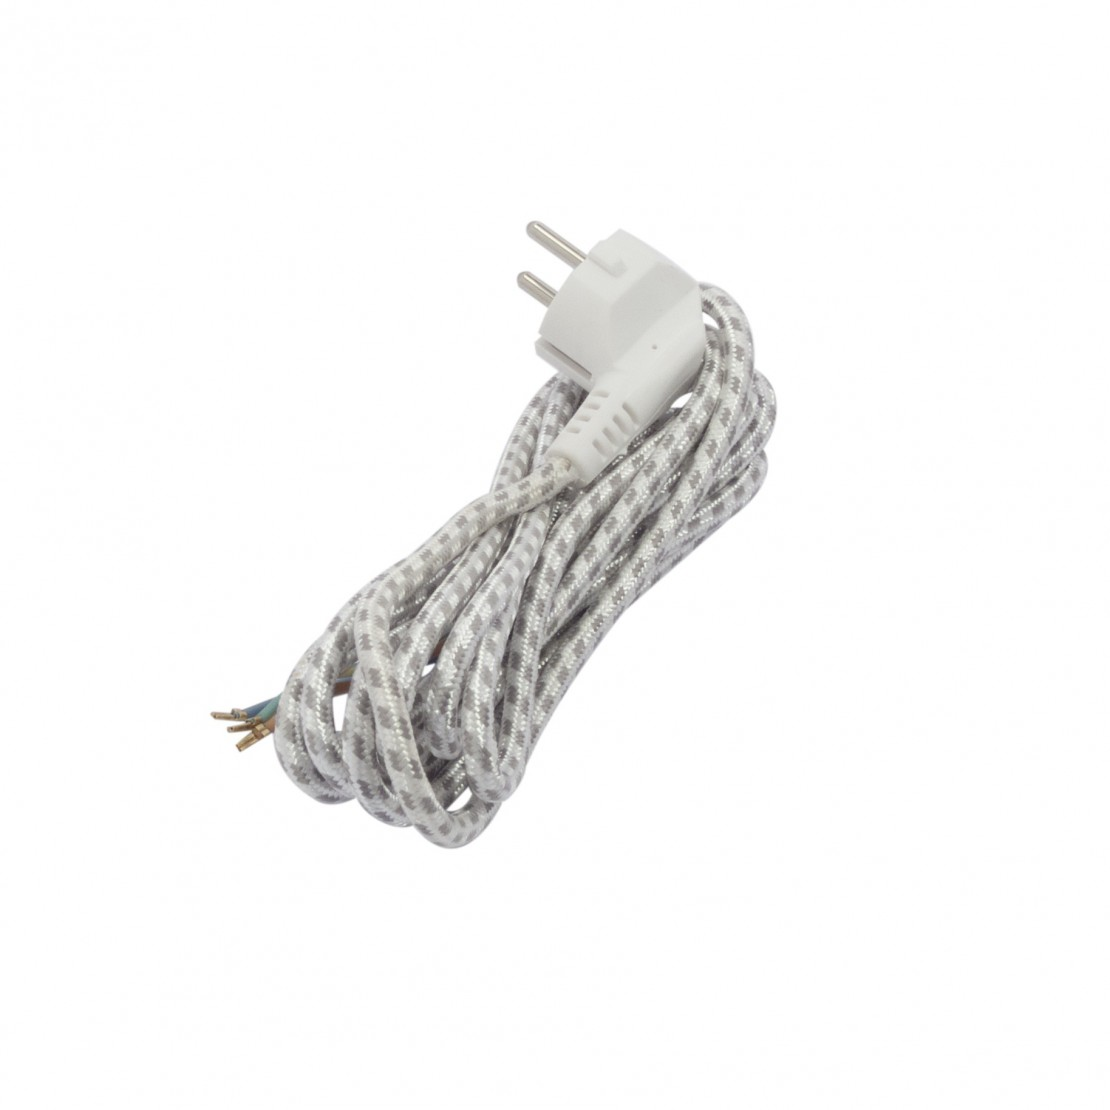 Cable de plancha - 3m - 3x1,0mm2 - Negro/Blanco (SCH)